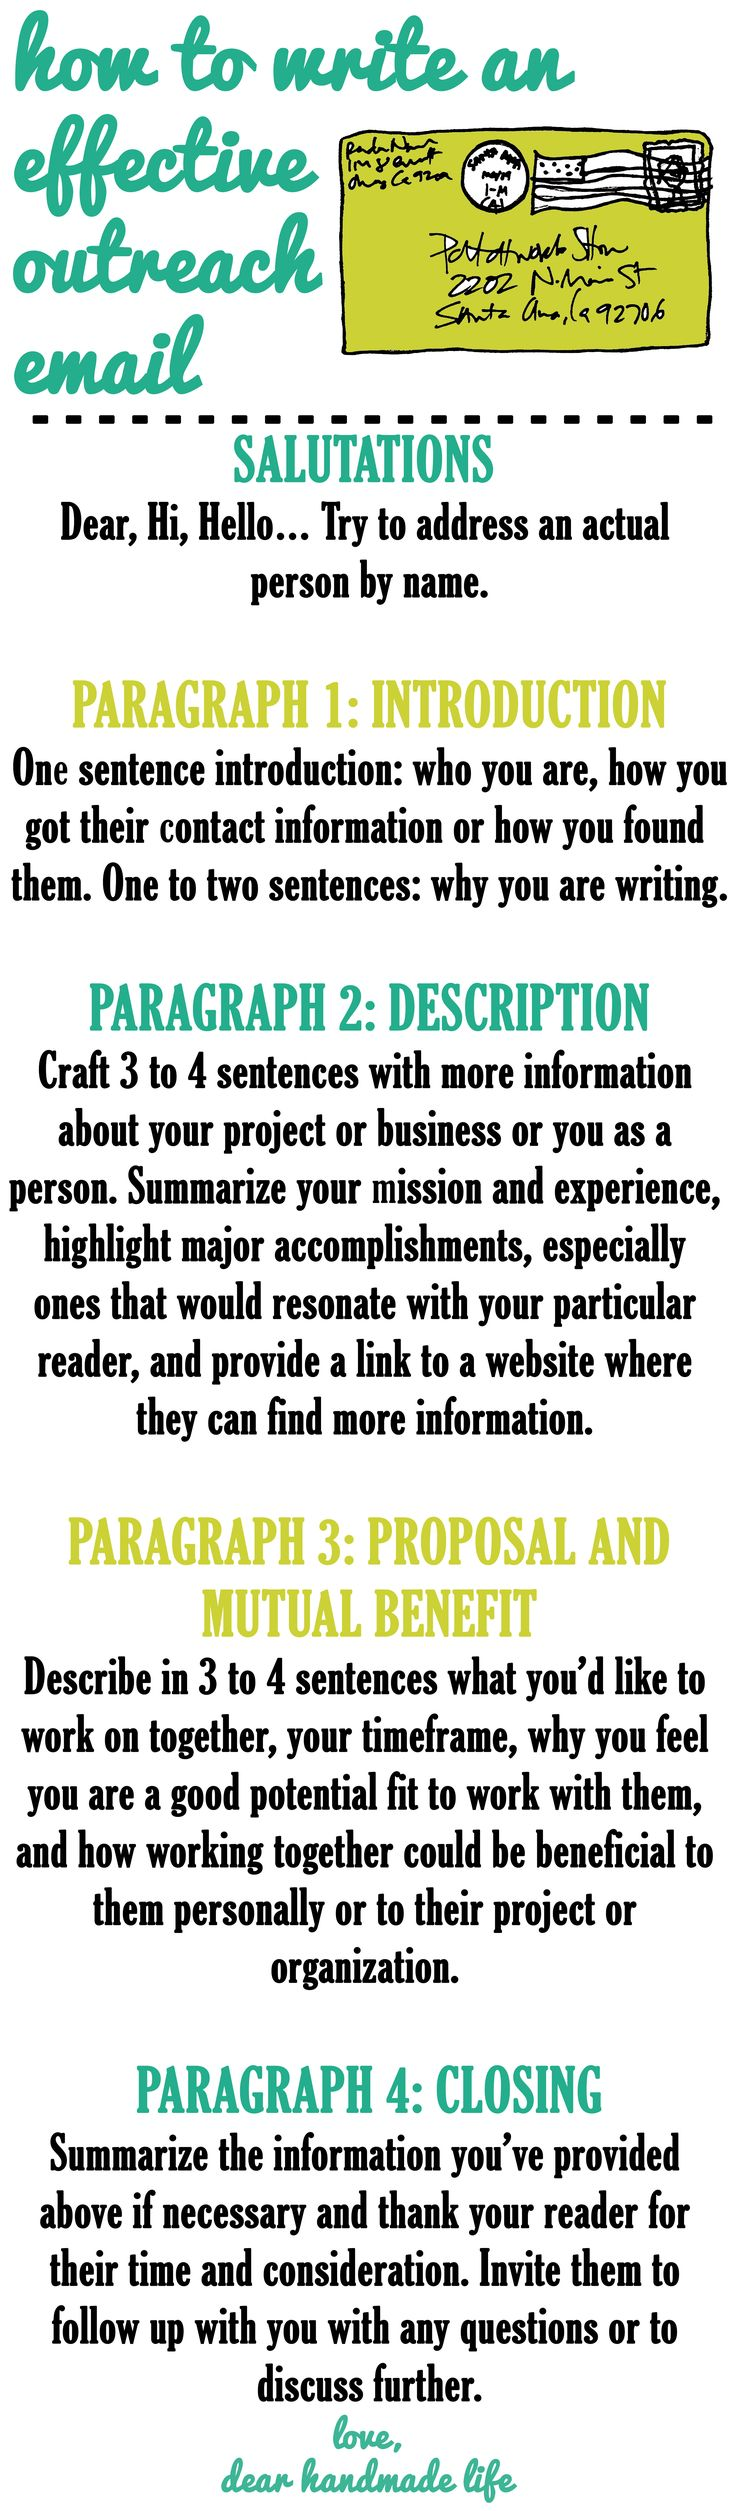 17 best ideas about write an email an email to how to write an effective outreach email dear